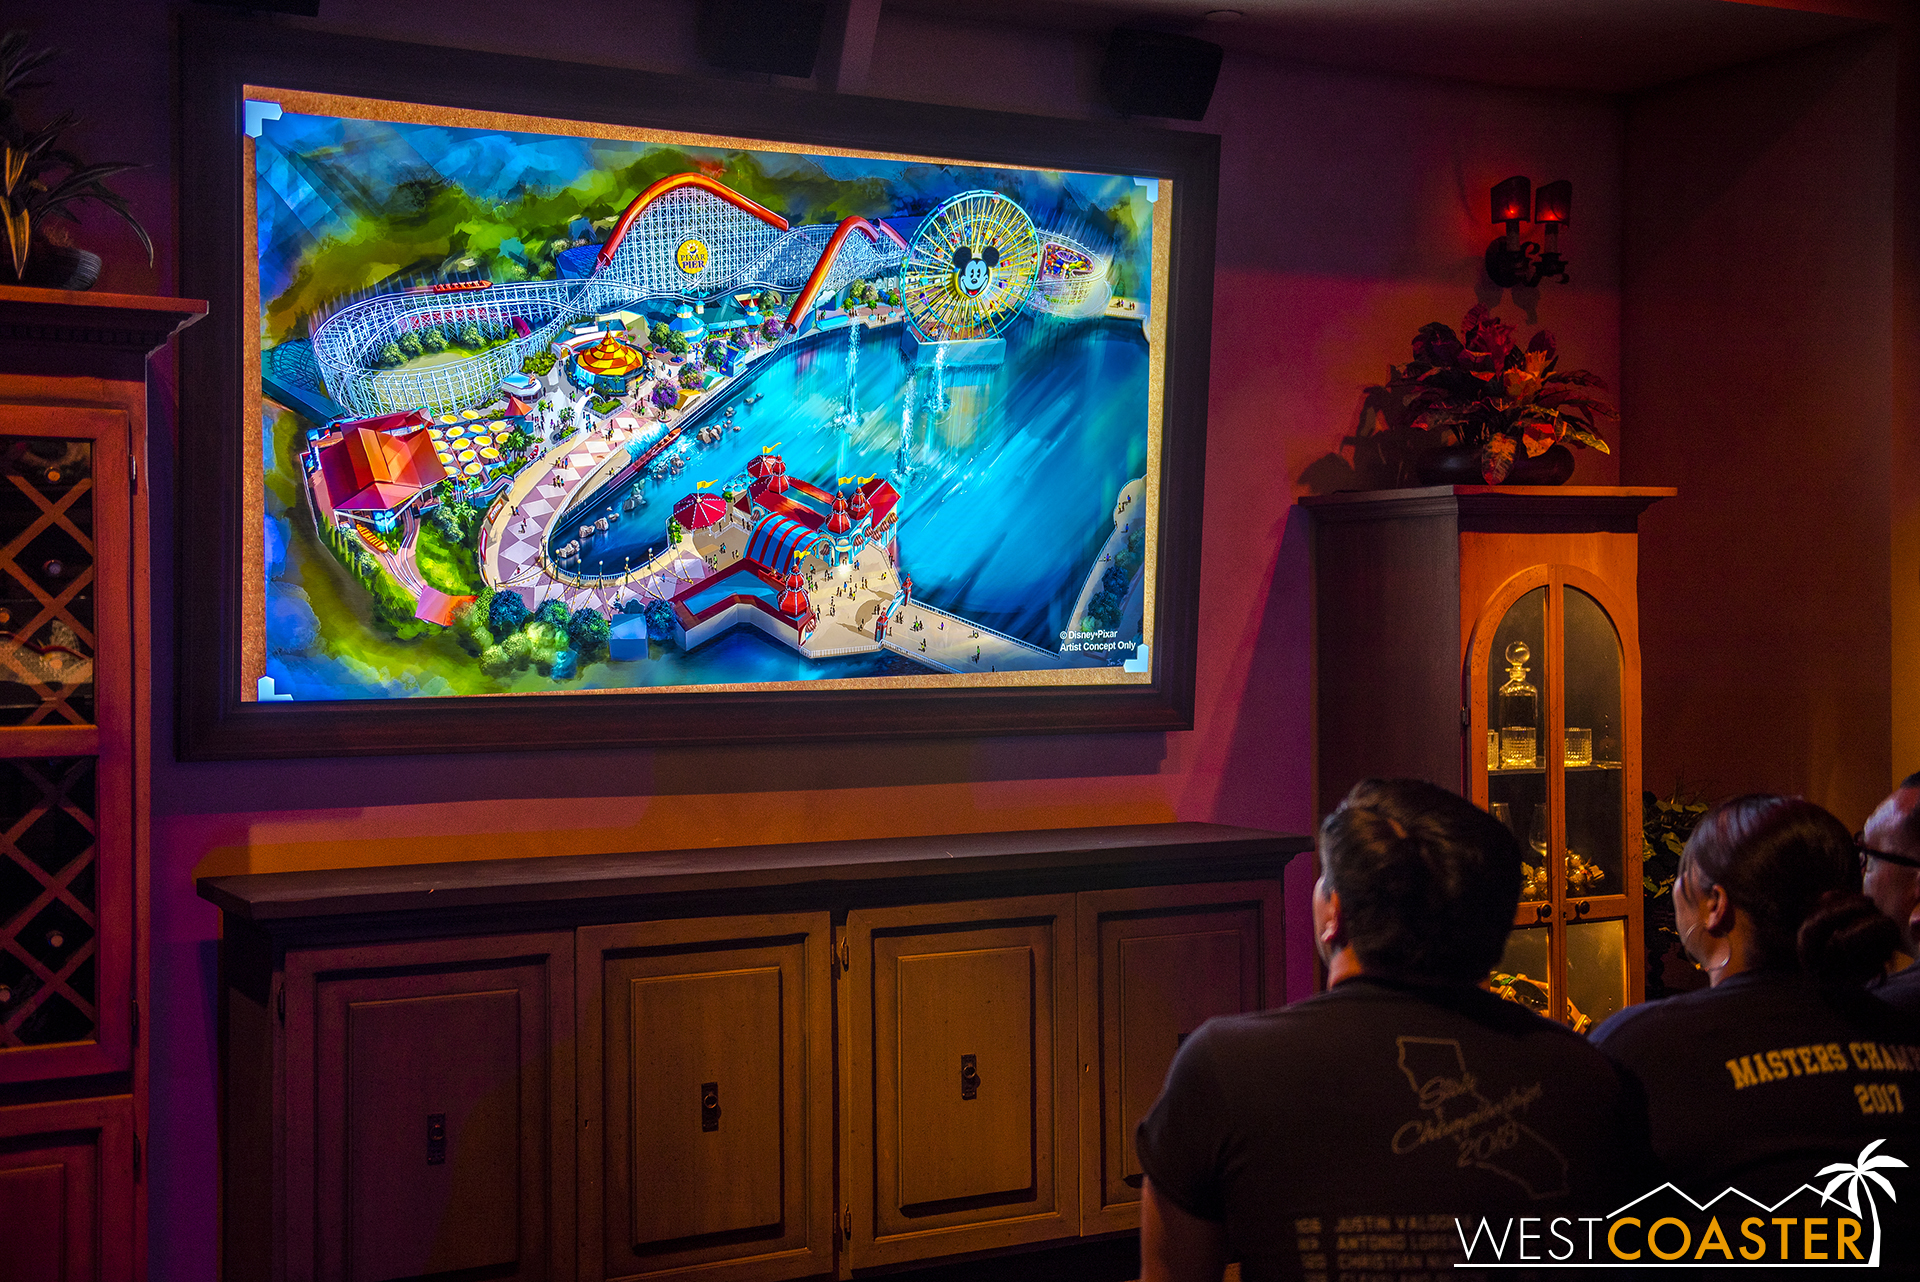 It's a great film, and whatever your thoughts on the actual Pixar Pier project, you can't deny that the Imagineers are pouring a lot of energy and thought into it.